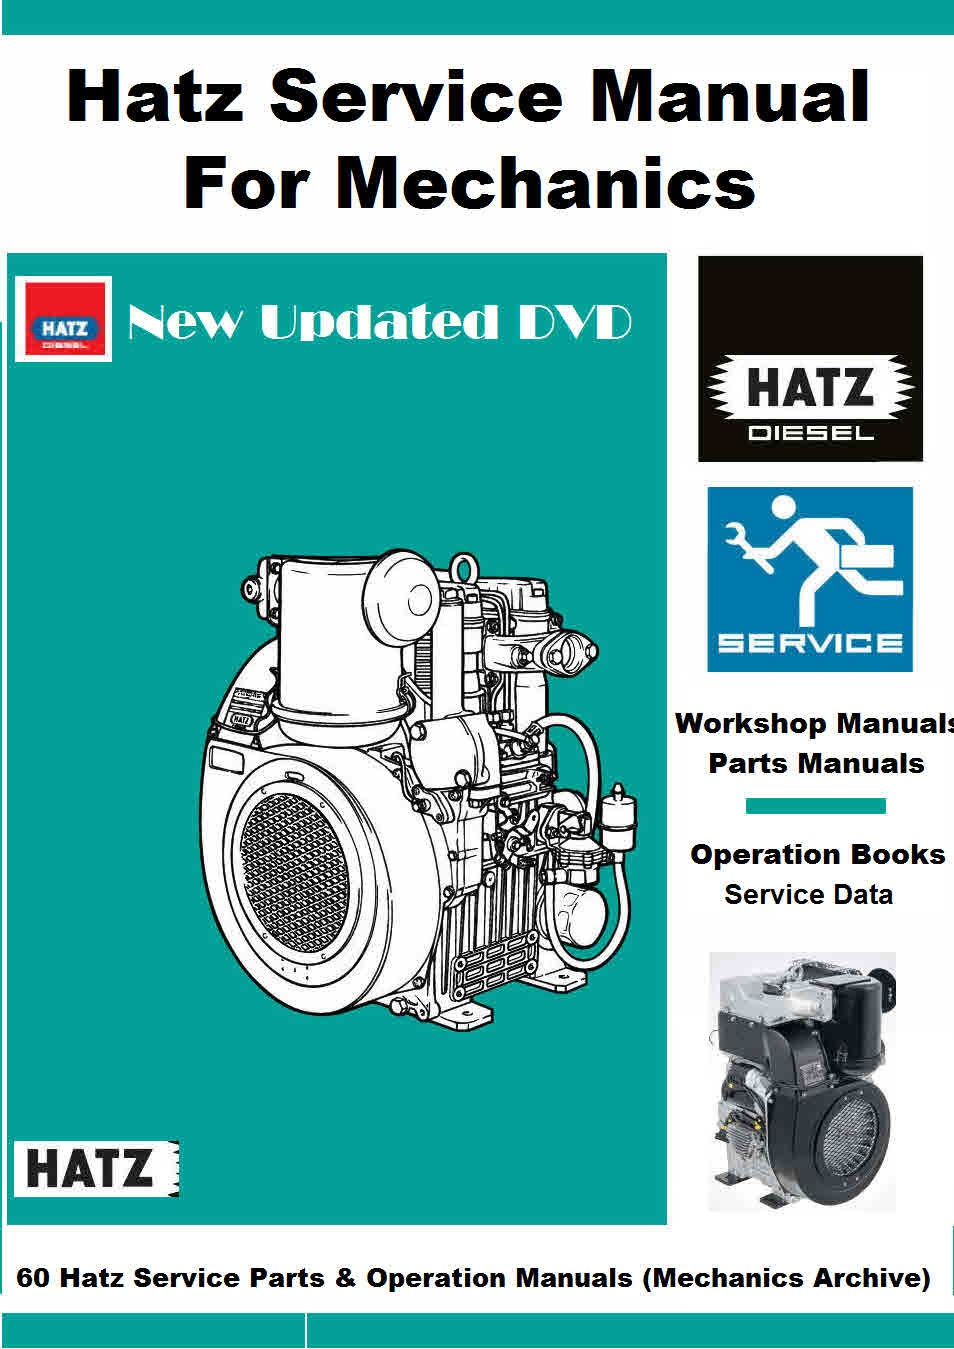 Hatz Diesel Parts Diagrams - Free Car Wiring Diagrams •